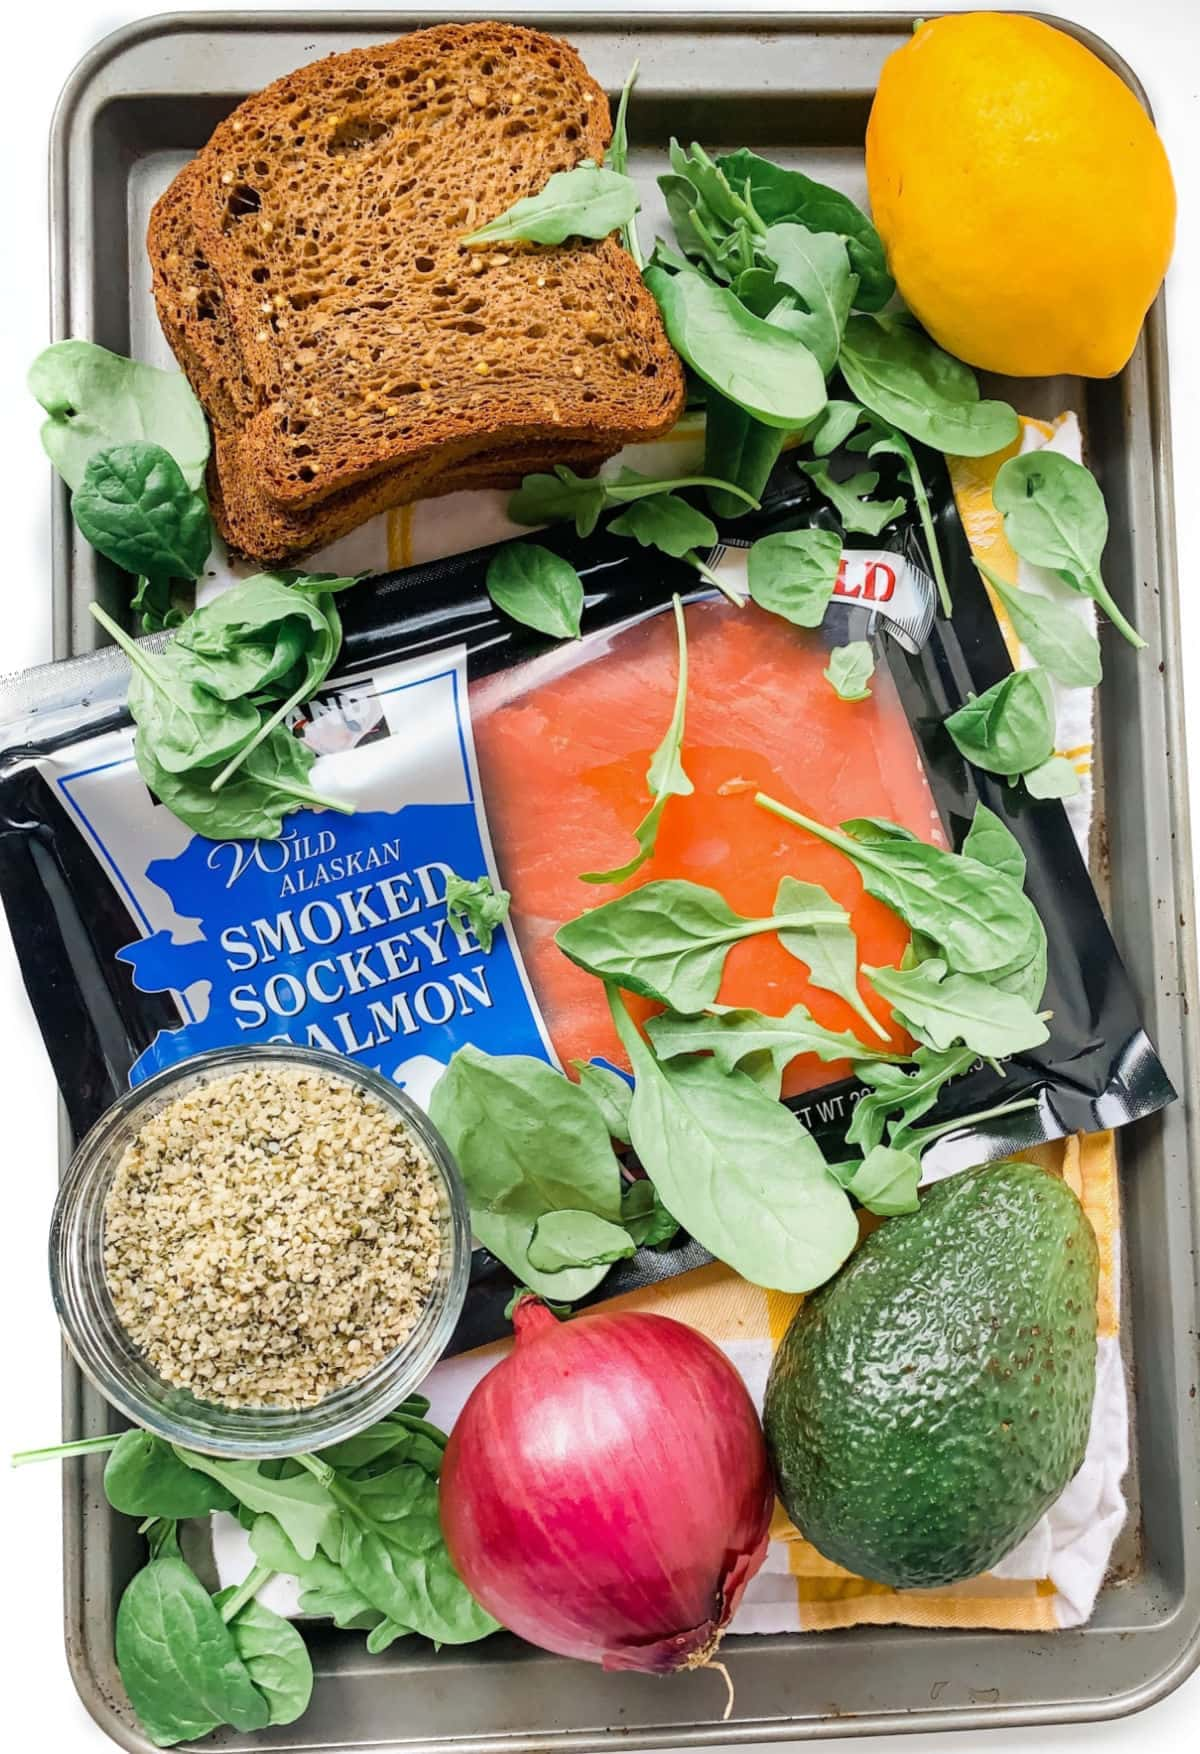 Ingredients on a sheet pan for making a smoked salmon sandwich. These include gluten free bread, leafy greens, smoked salmon, red onion, avocado, hemp seeds, and lemon.